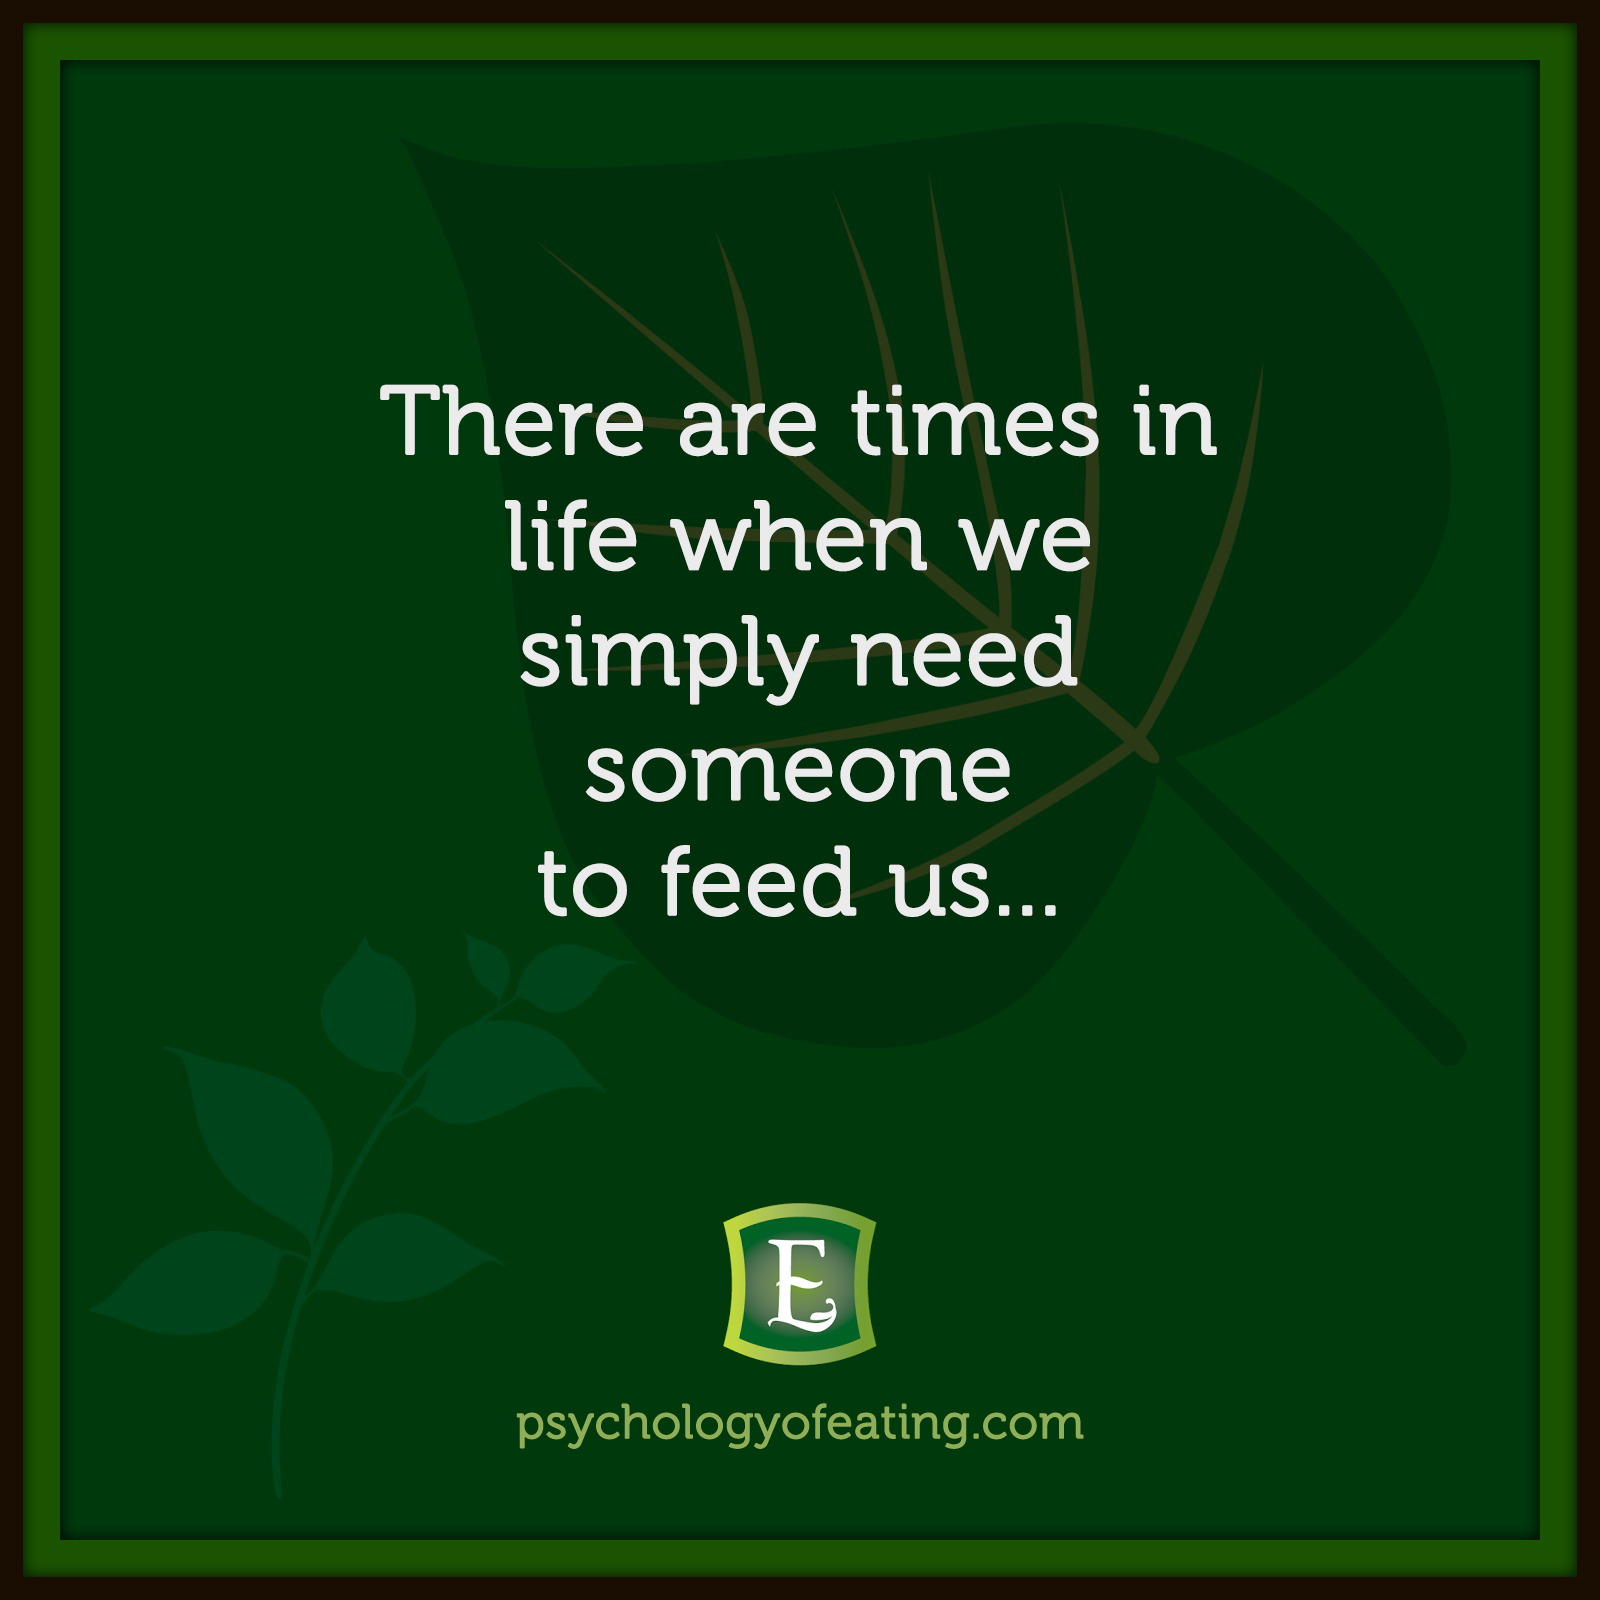 There are times in life when we simply need someone to feed us… #health #nutrition #eatingpsychology #IPE